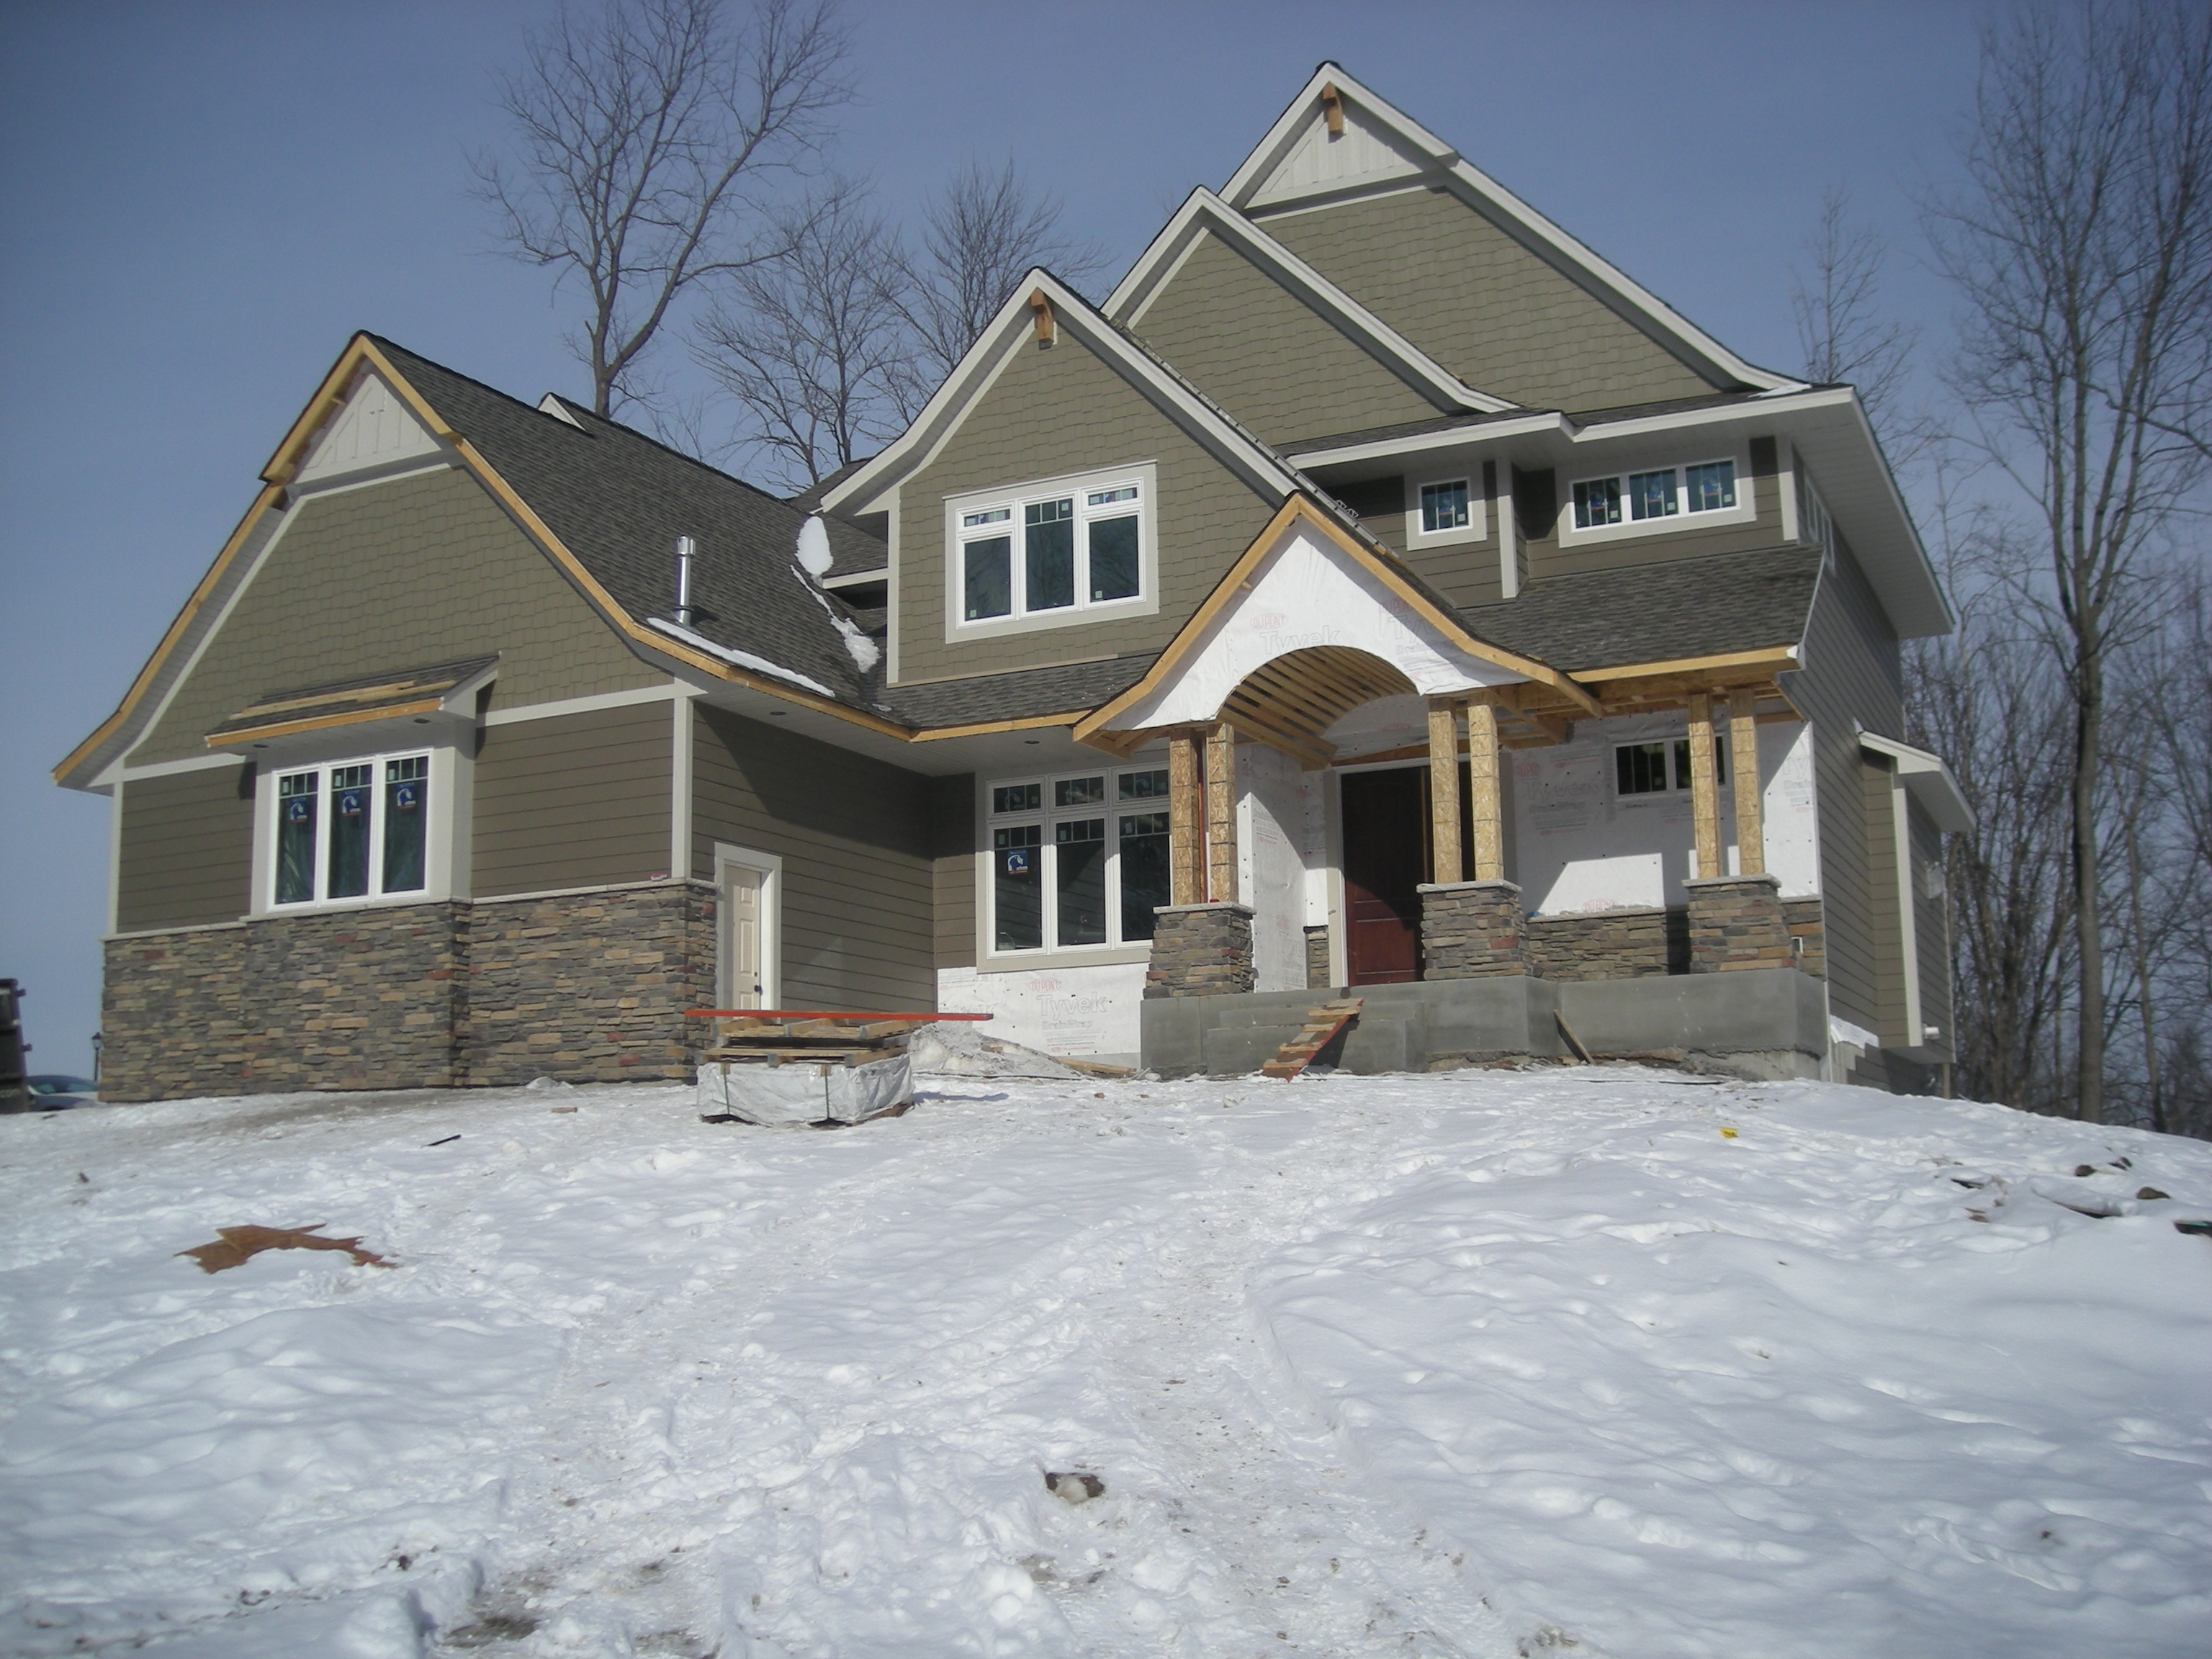 Update on construction of new home in taylor creek of for Building a house in minnesota